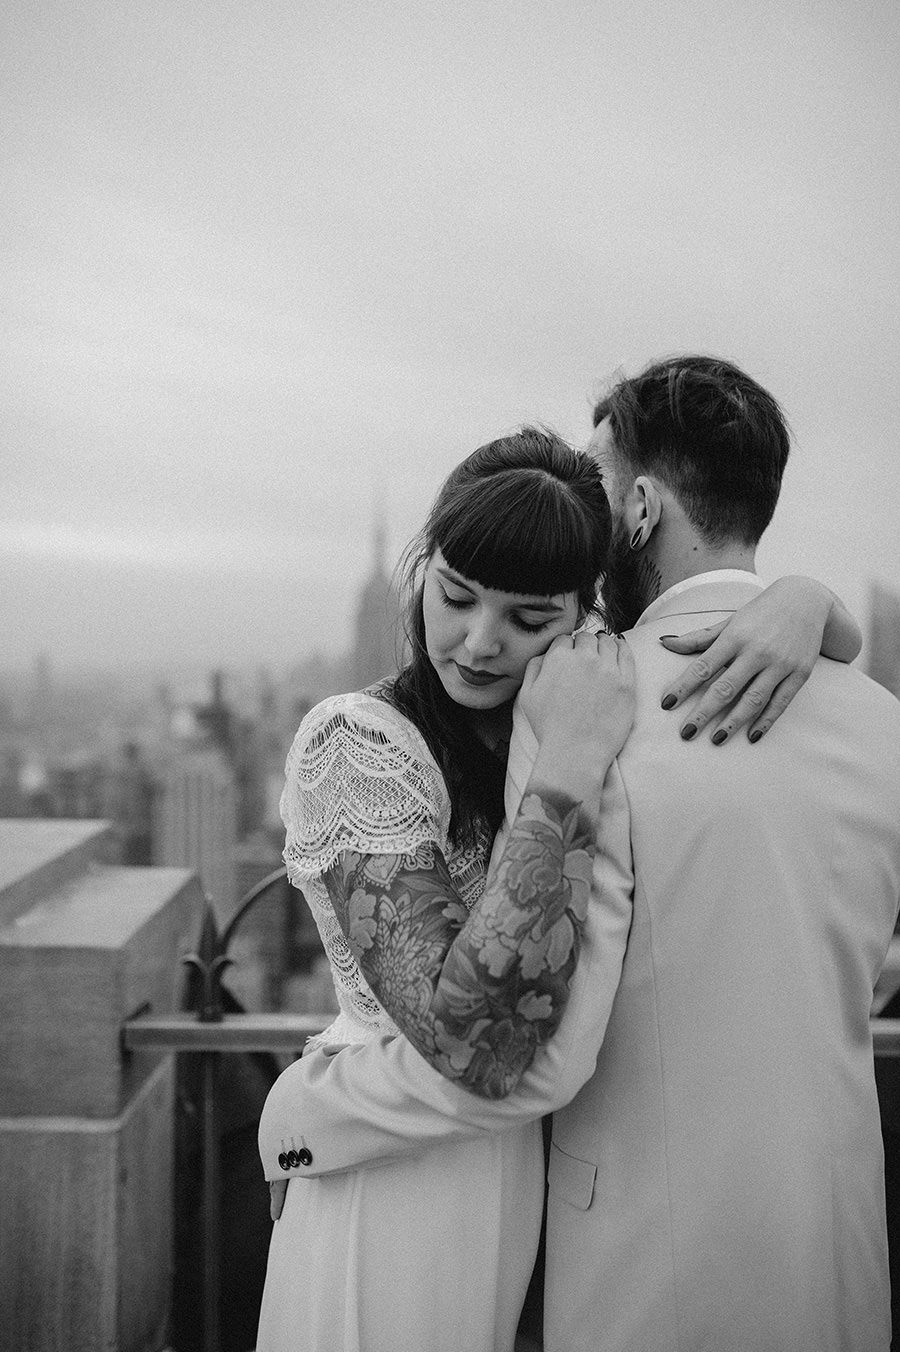 New_York_Wedding_Photographer_Elopement_Hochzeitsfotograf_New_York_City_Top_of_the_Rock_Brooklyn_Bridge_Weddingphoto